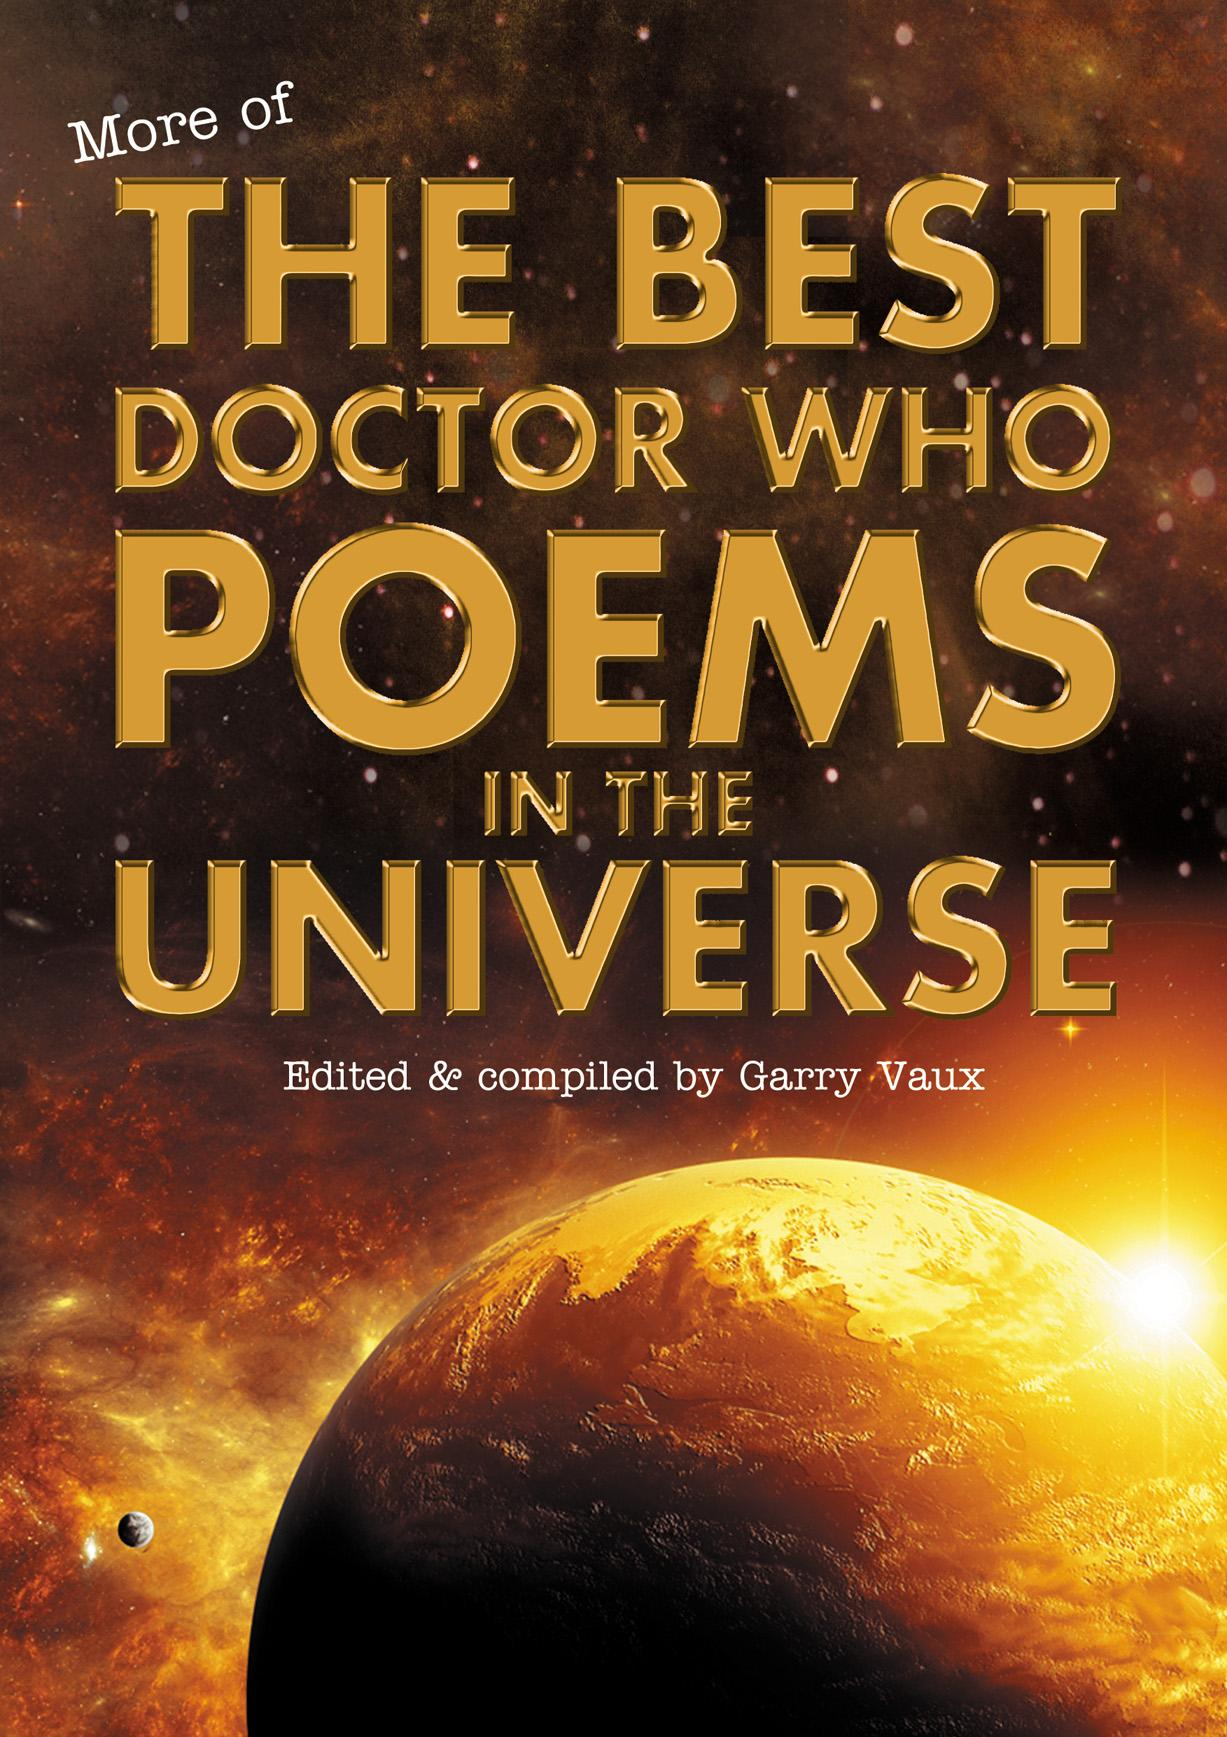 More of the Best Doctor Who Poems in the Universe (Credit: Garry Vaux)